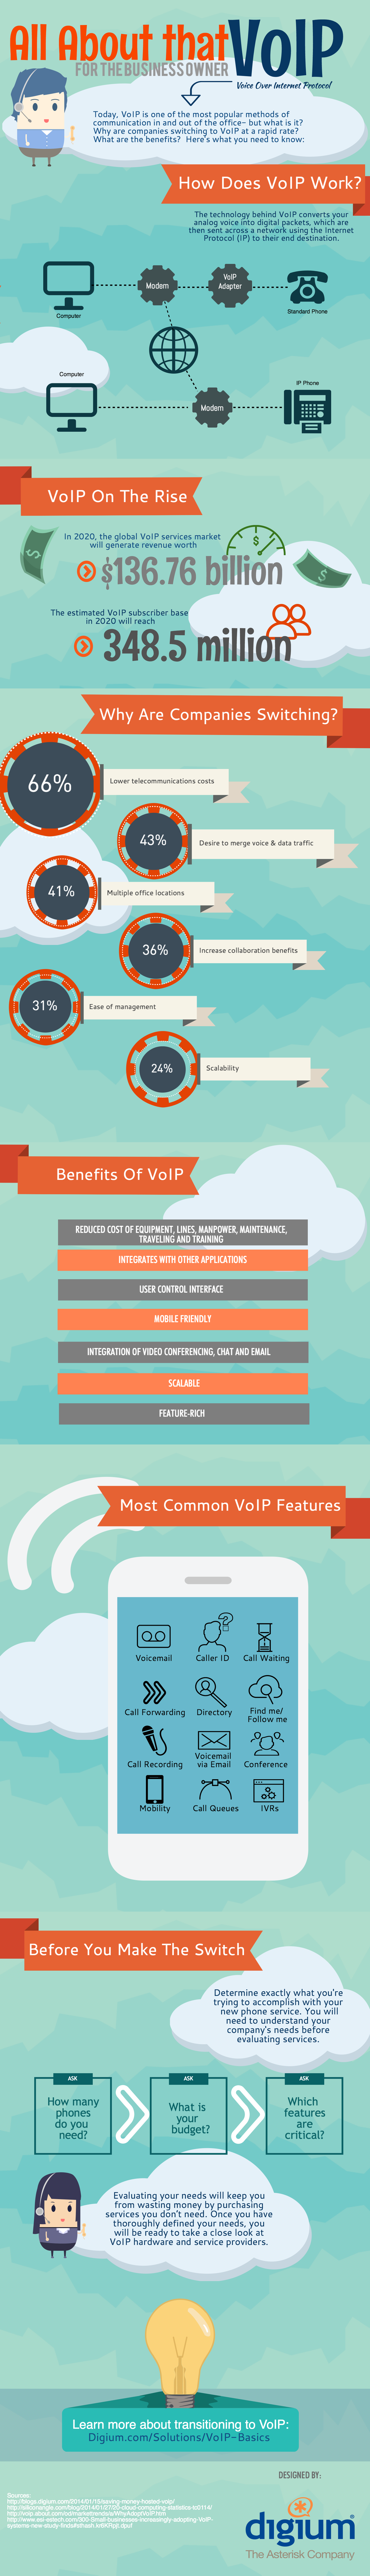 All-About-That-VoIP-infographic_blog